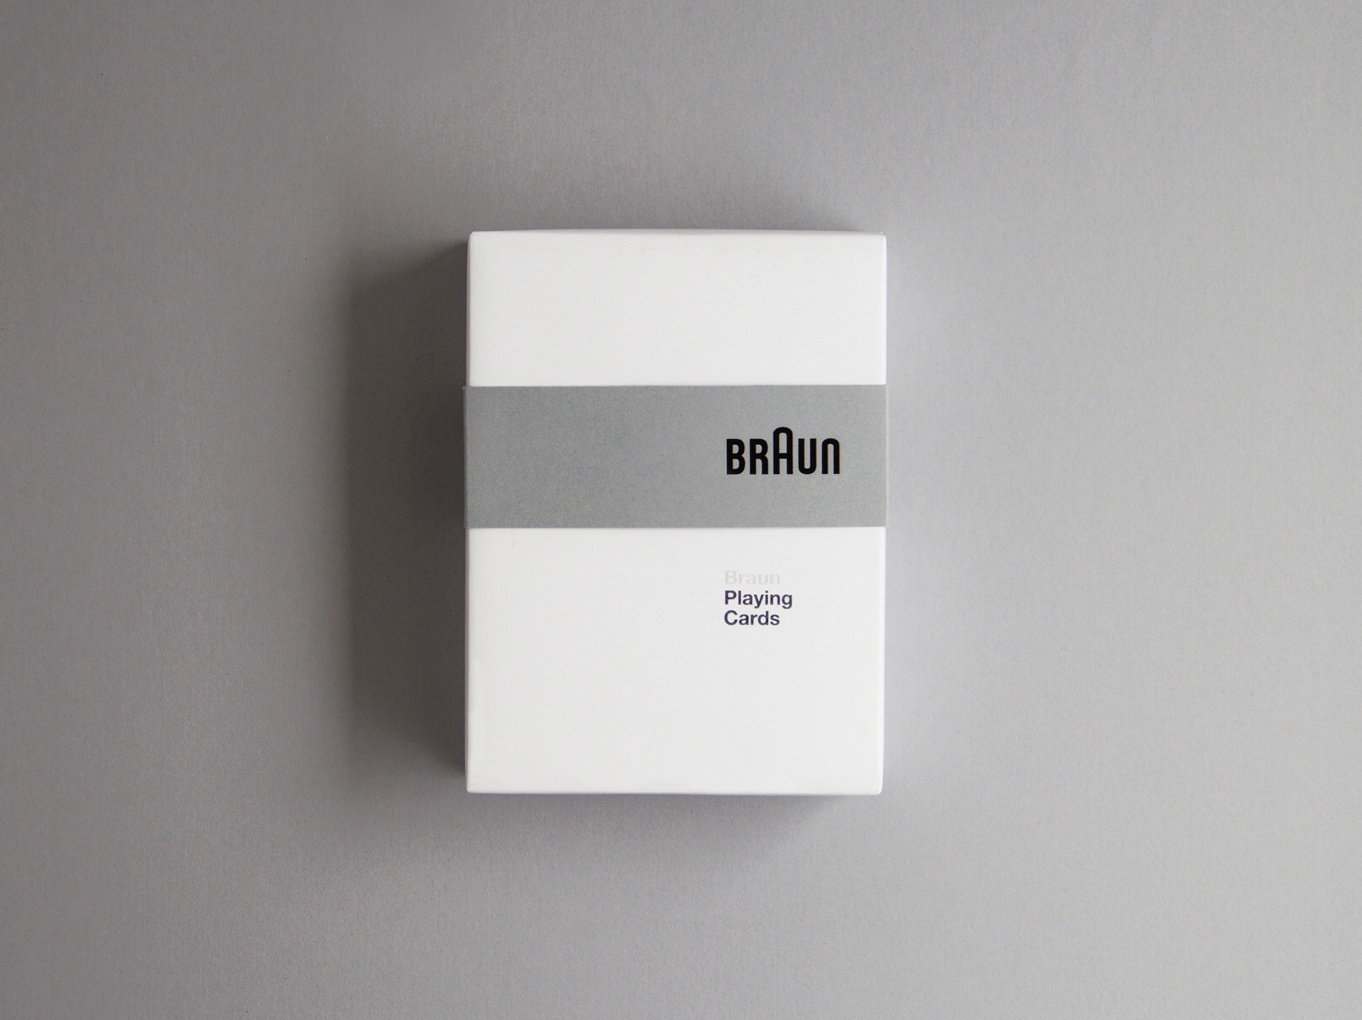 braun playing cards modernism dieter rams package cards game packaging braun black silkscreen material stationary product design product brand black  white print typography type graphic  design design